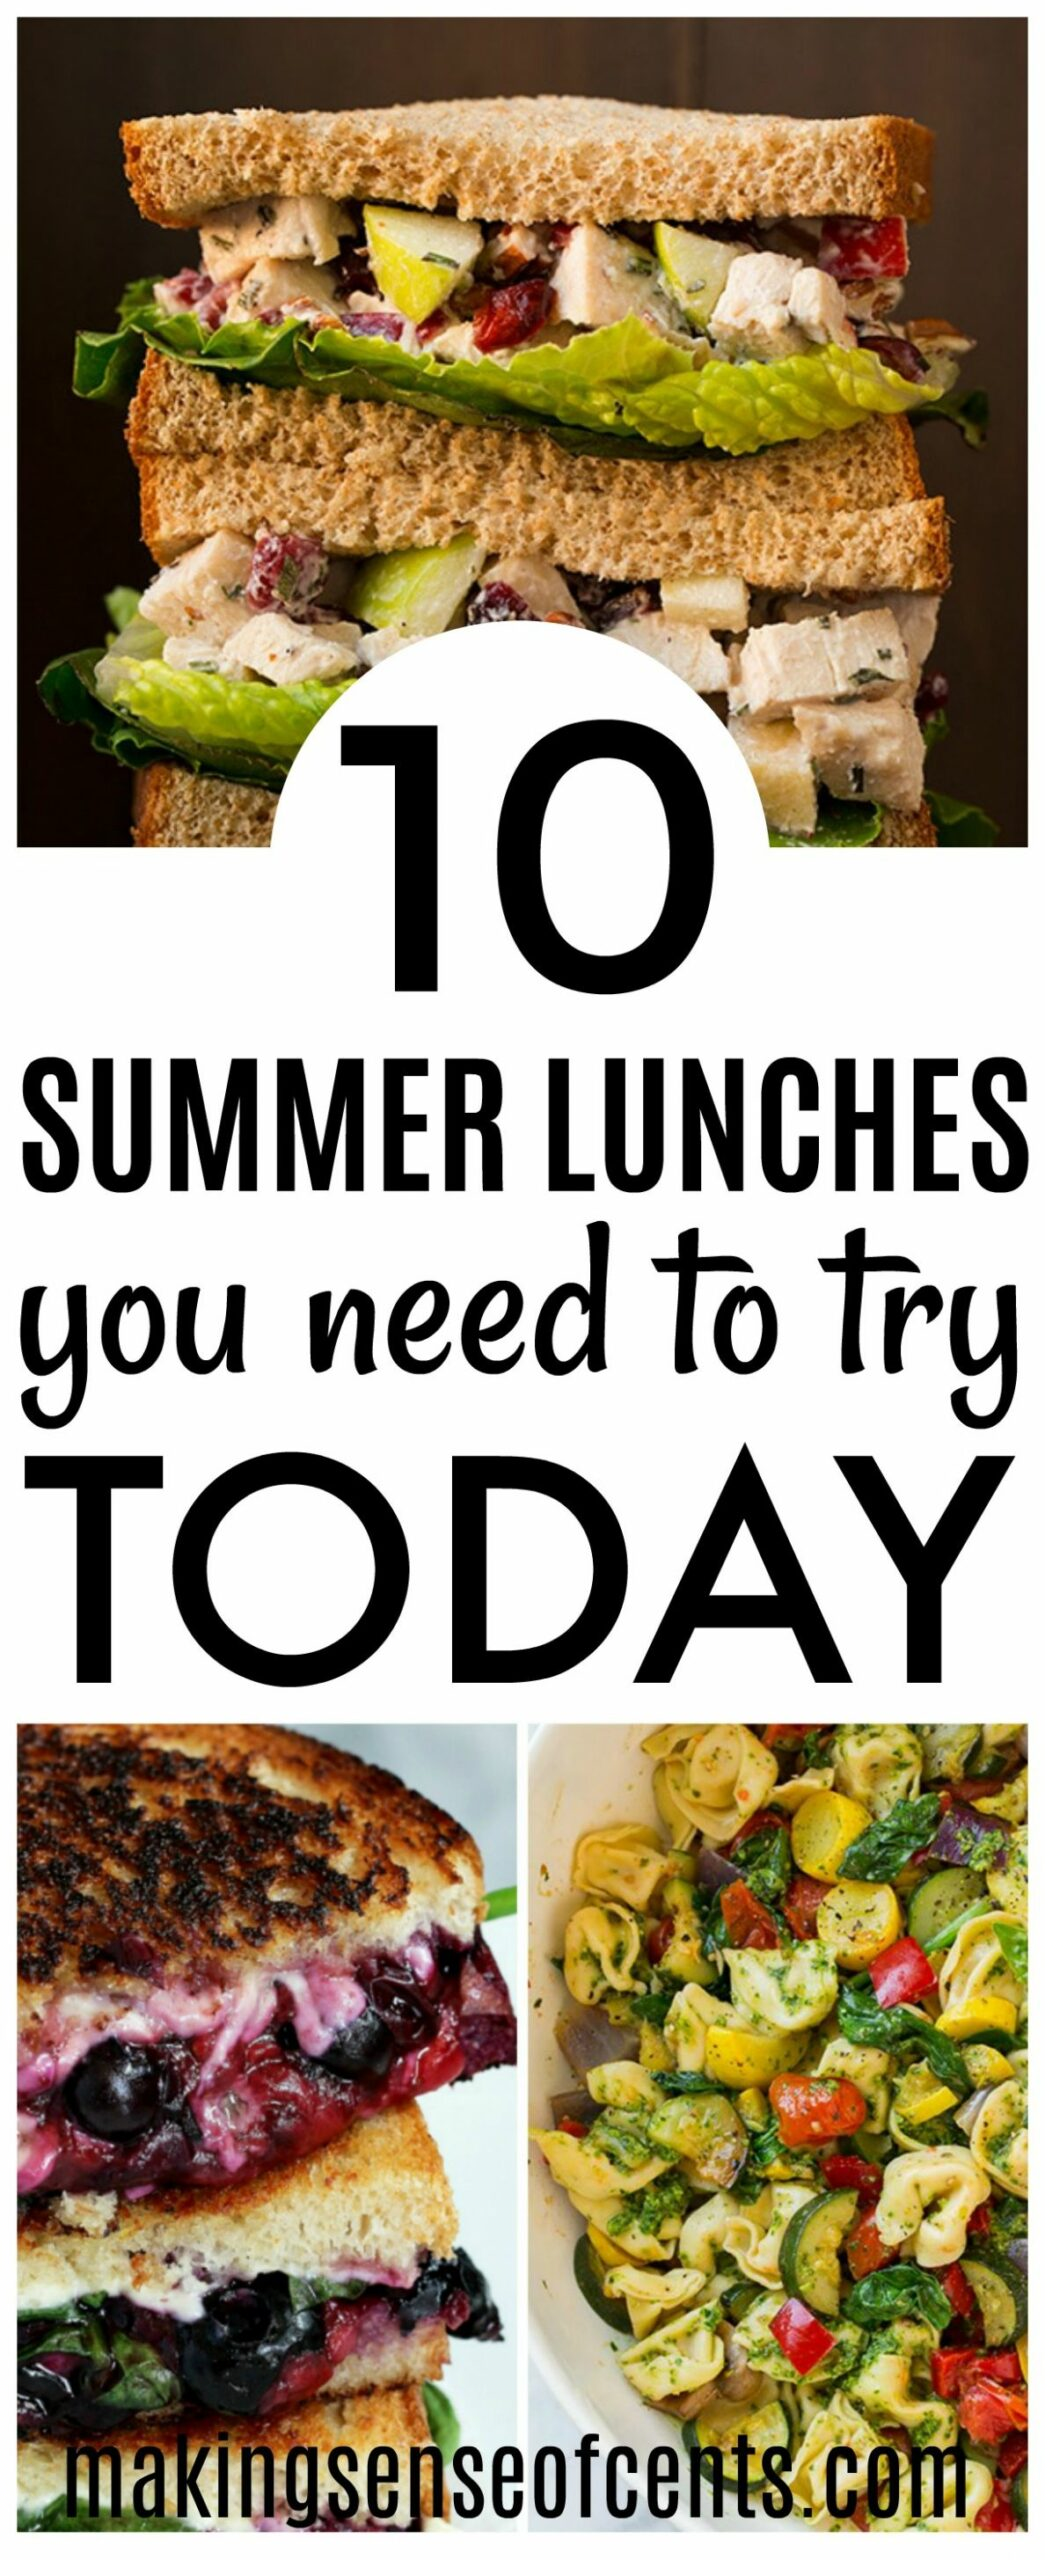 9 Delicious Summer Lunch Ideas - Summer Meals You Need To Make! - Summer Recipes For Lunch